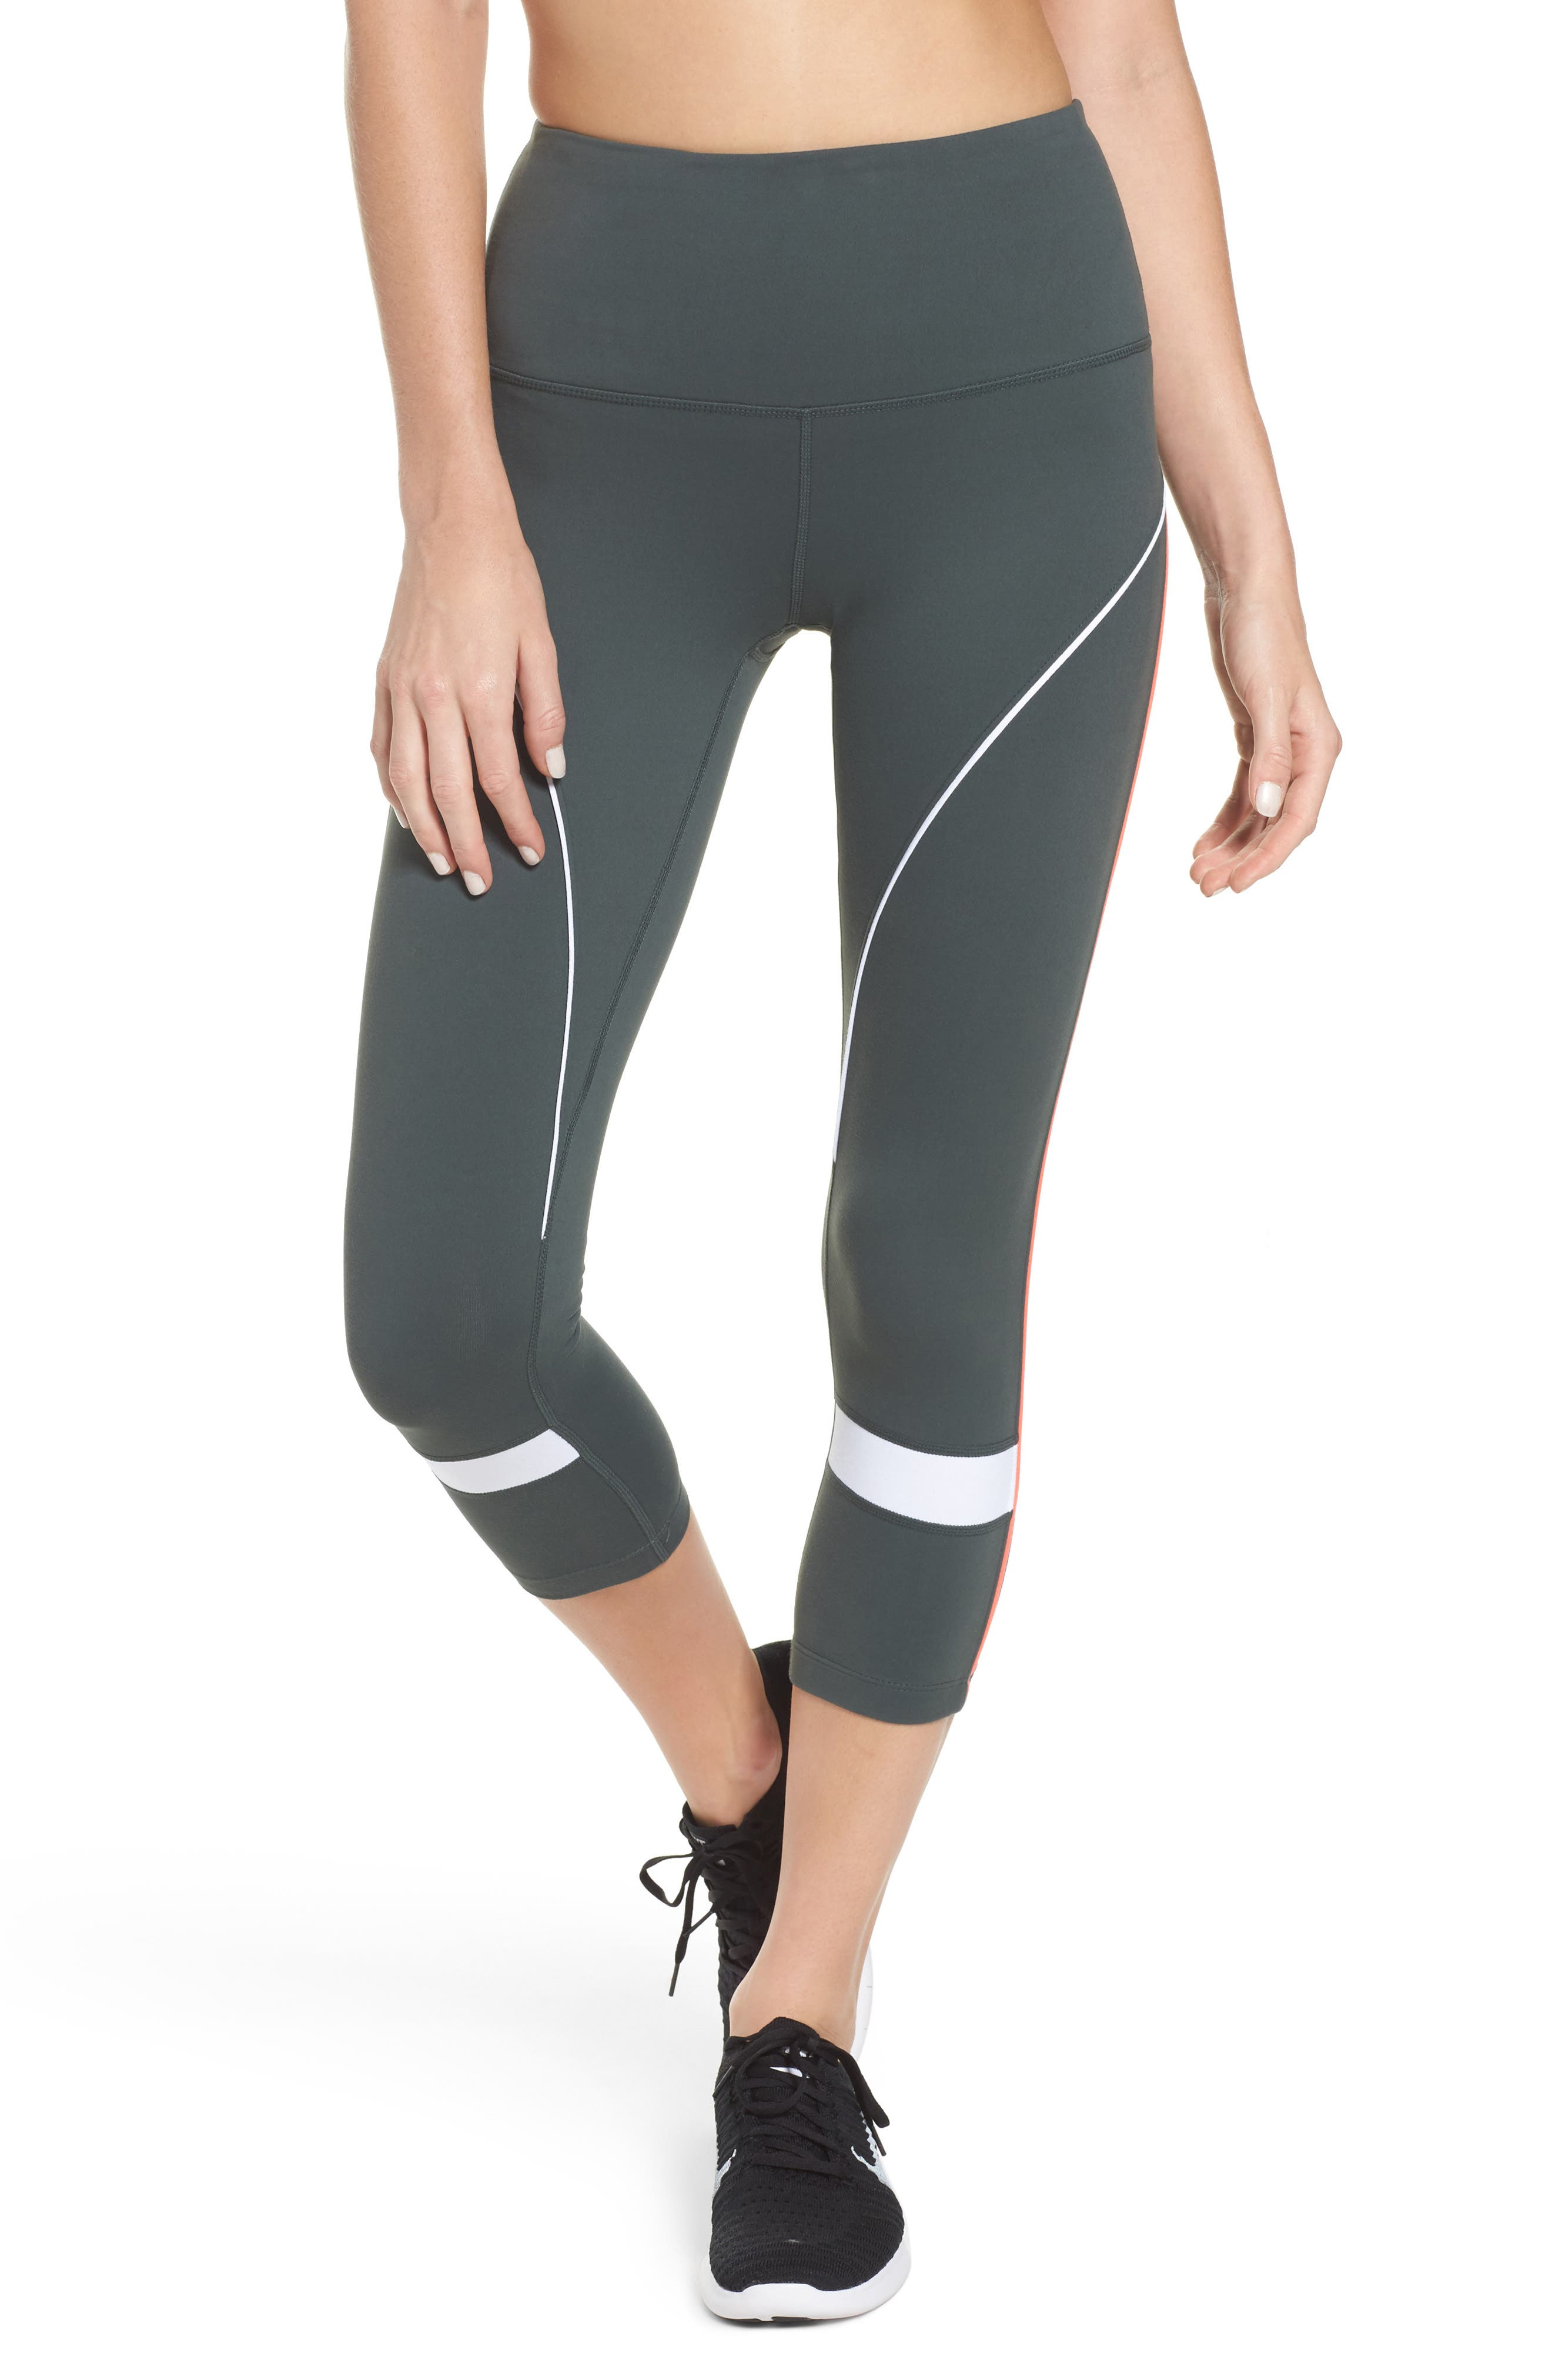 Piper High Waist Crop Leggings,                         Main,                         color, 021